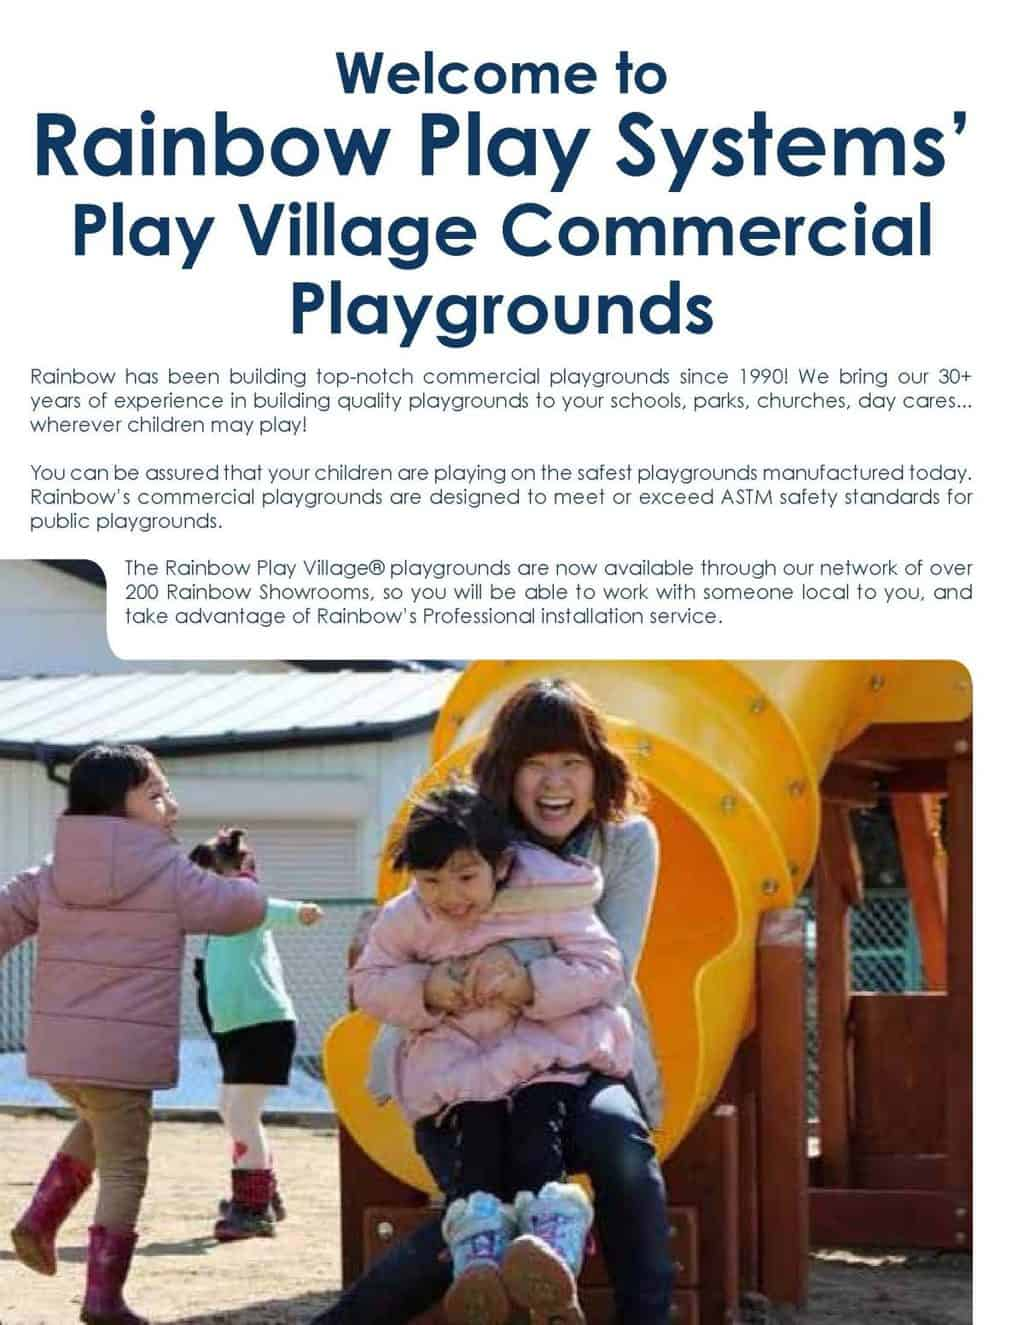 Rainbow Play Village Design 702 (38)